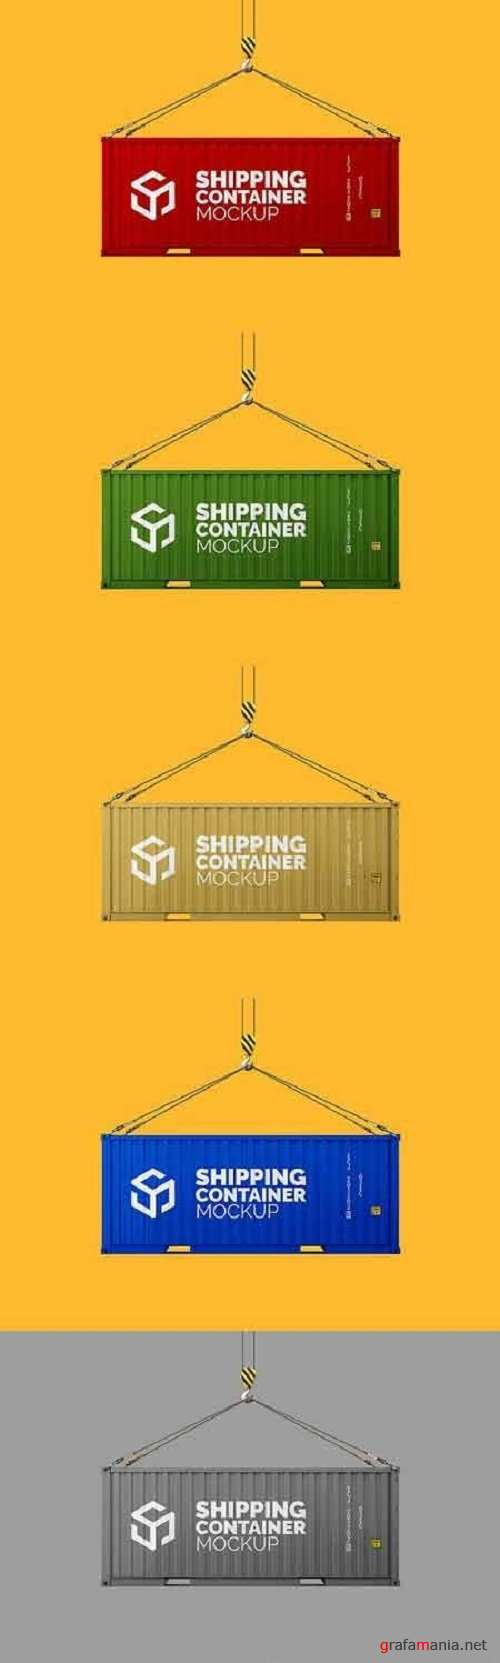 Shipping Container Mockup 1828174